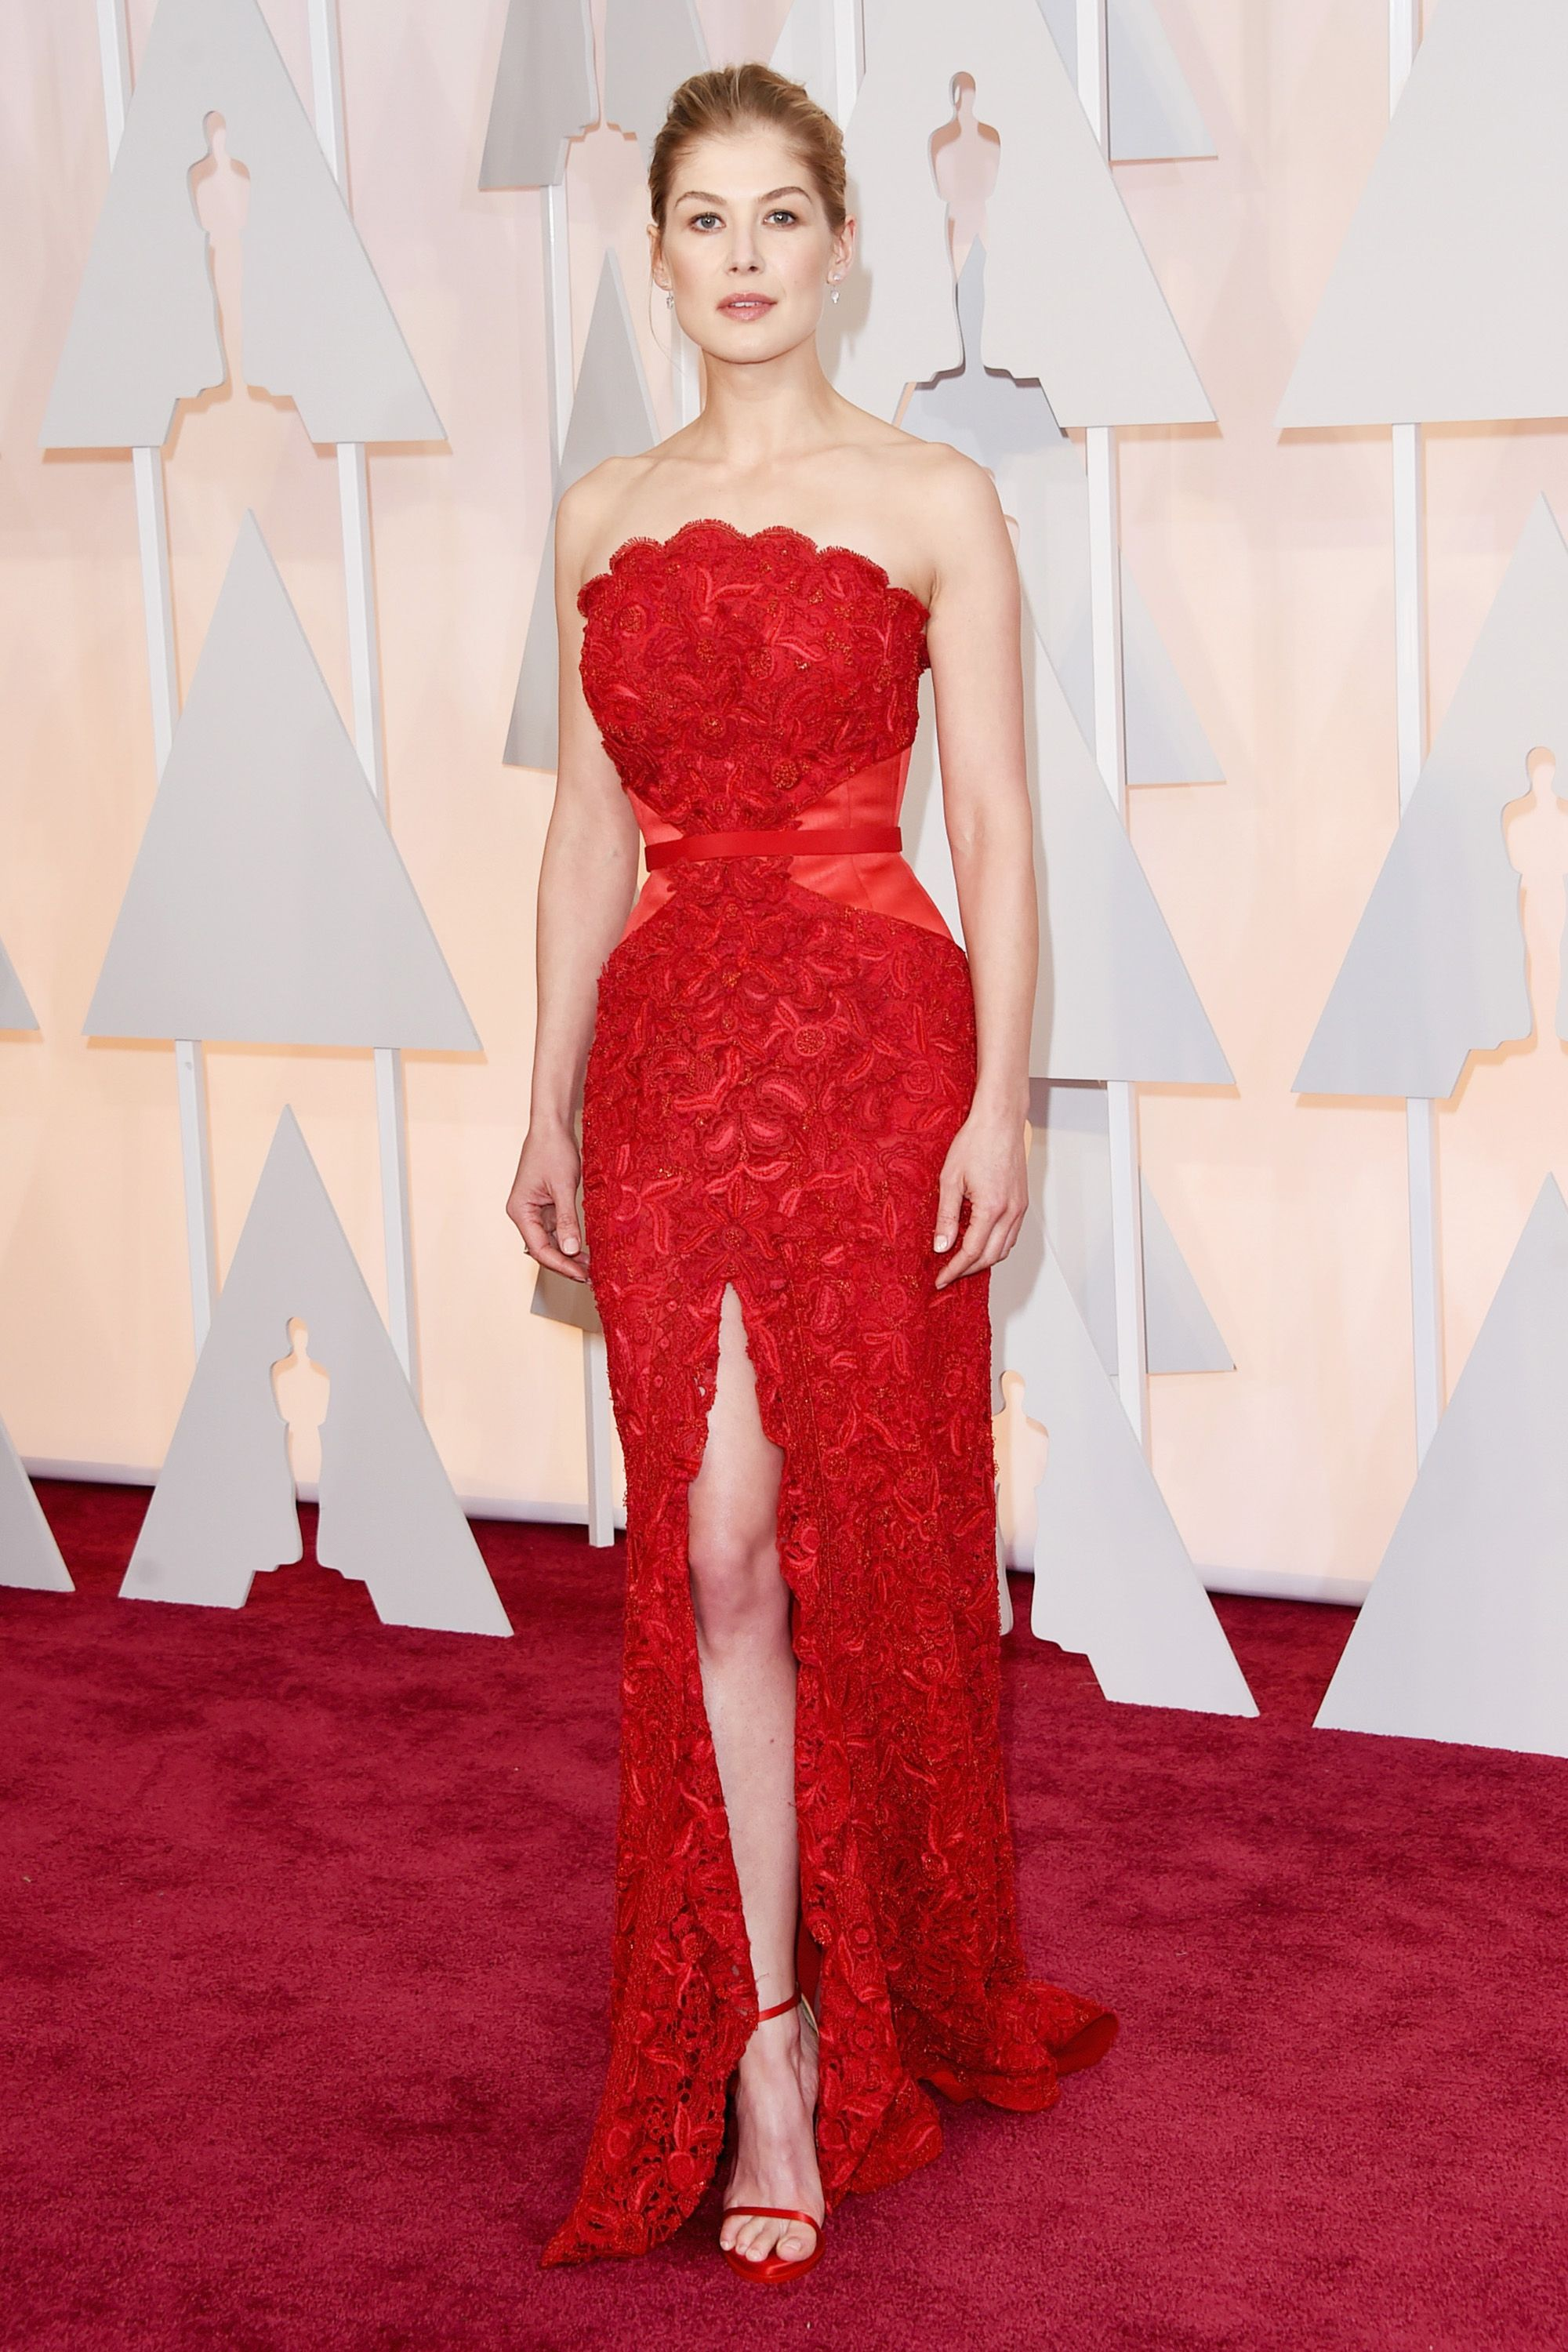 cd1a5b4c048d5 Rosamund Pike at the 2015 Oscars. See all the best red carpet arrivals